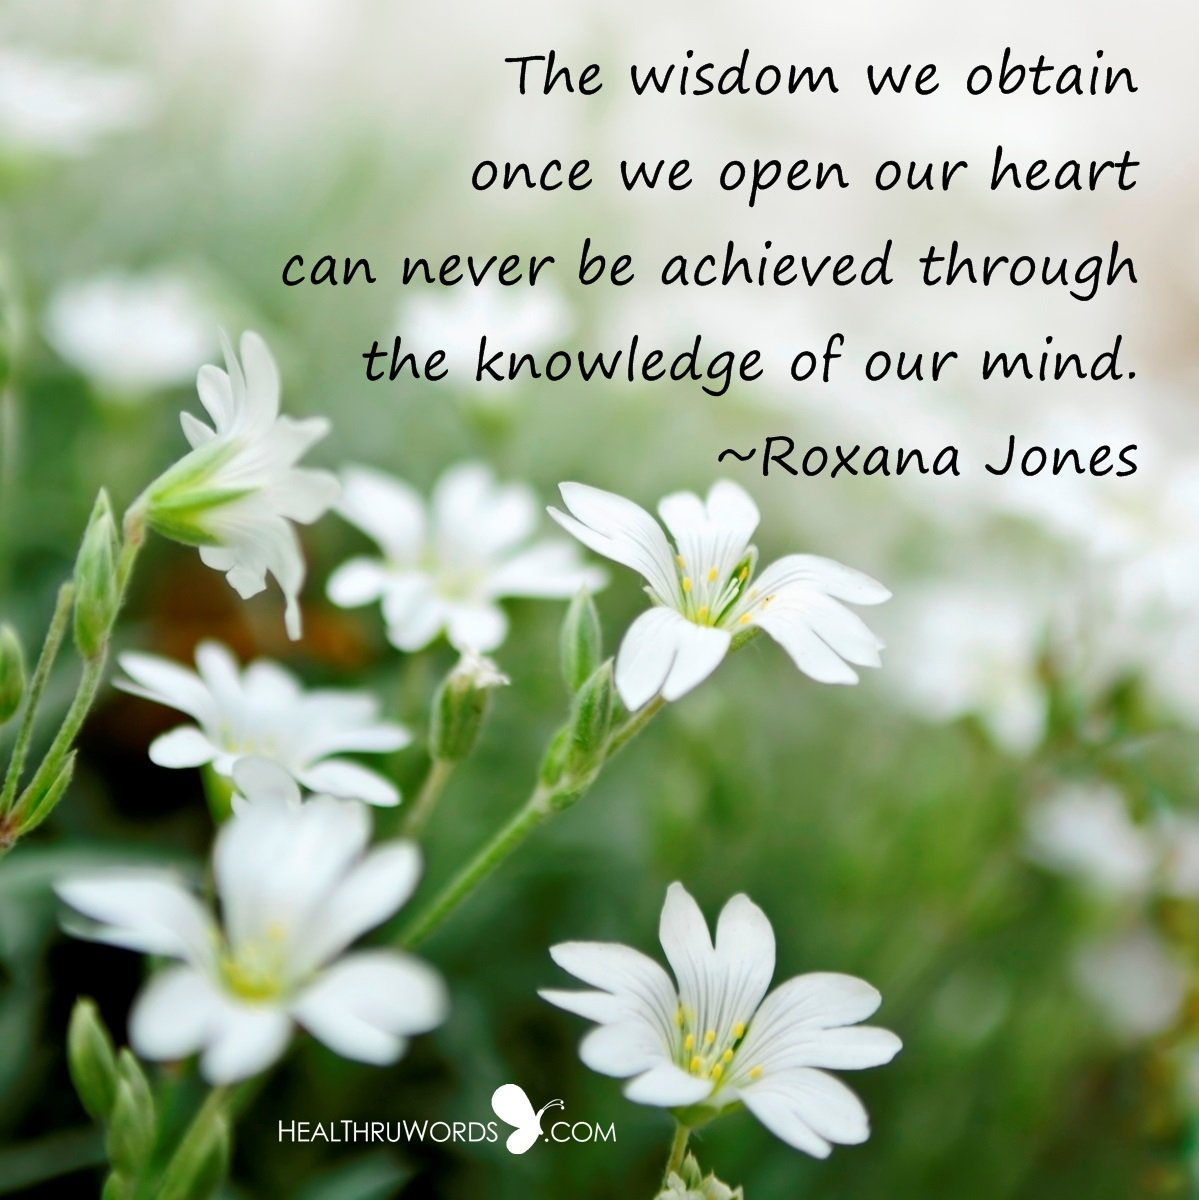 Inspirational Image: Wisdom is found in the Heart